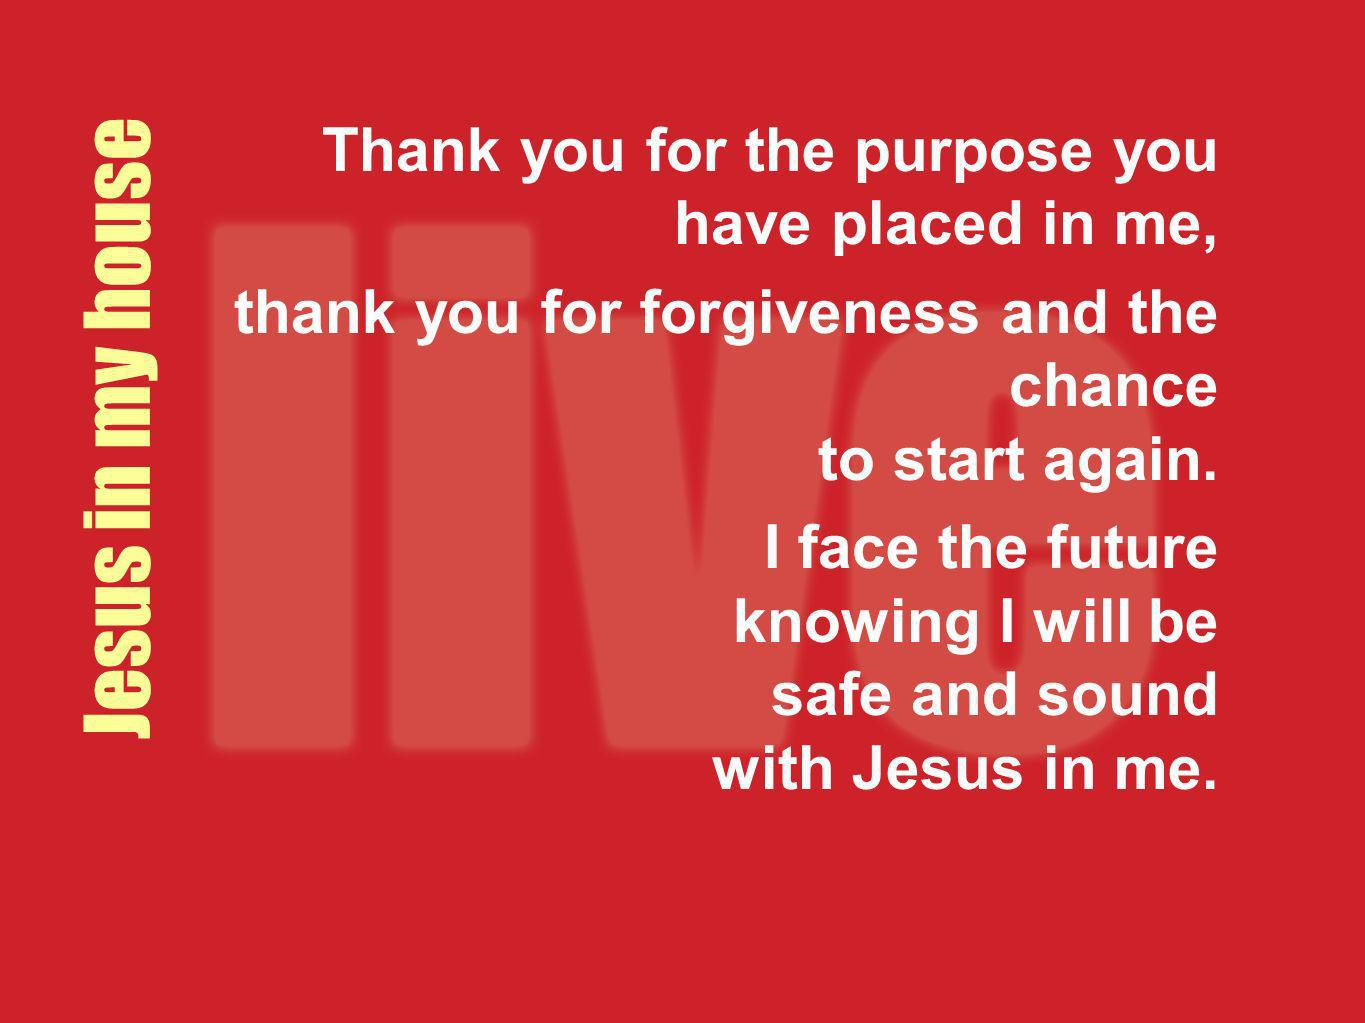 Jesus in my house Thank you for the purpose you have placed in me, thank you for forgiveness and the chance to start again. I face the future knowing